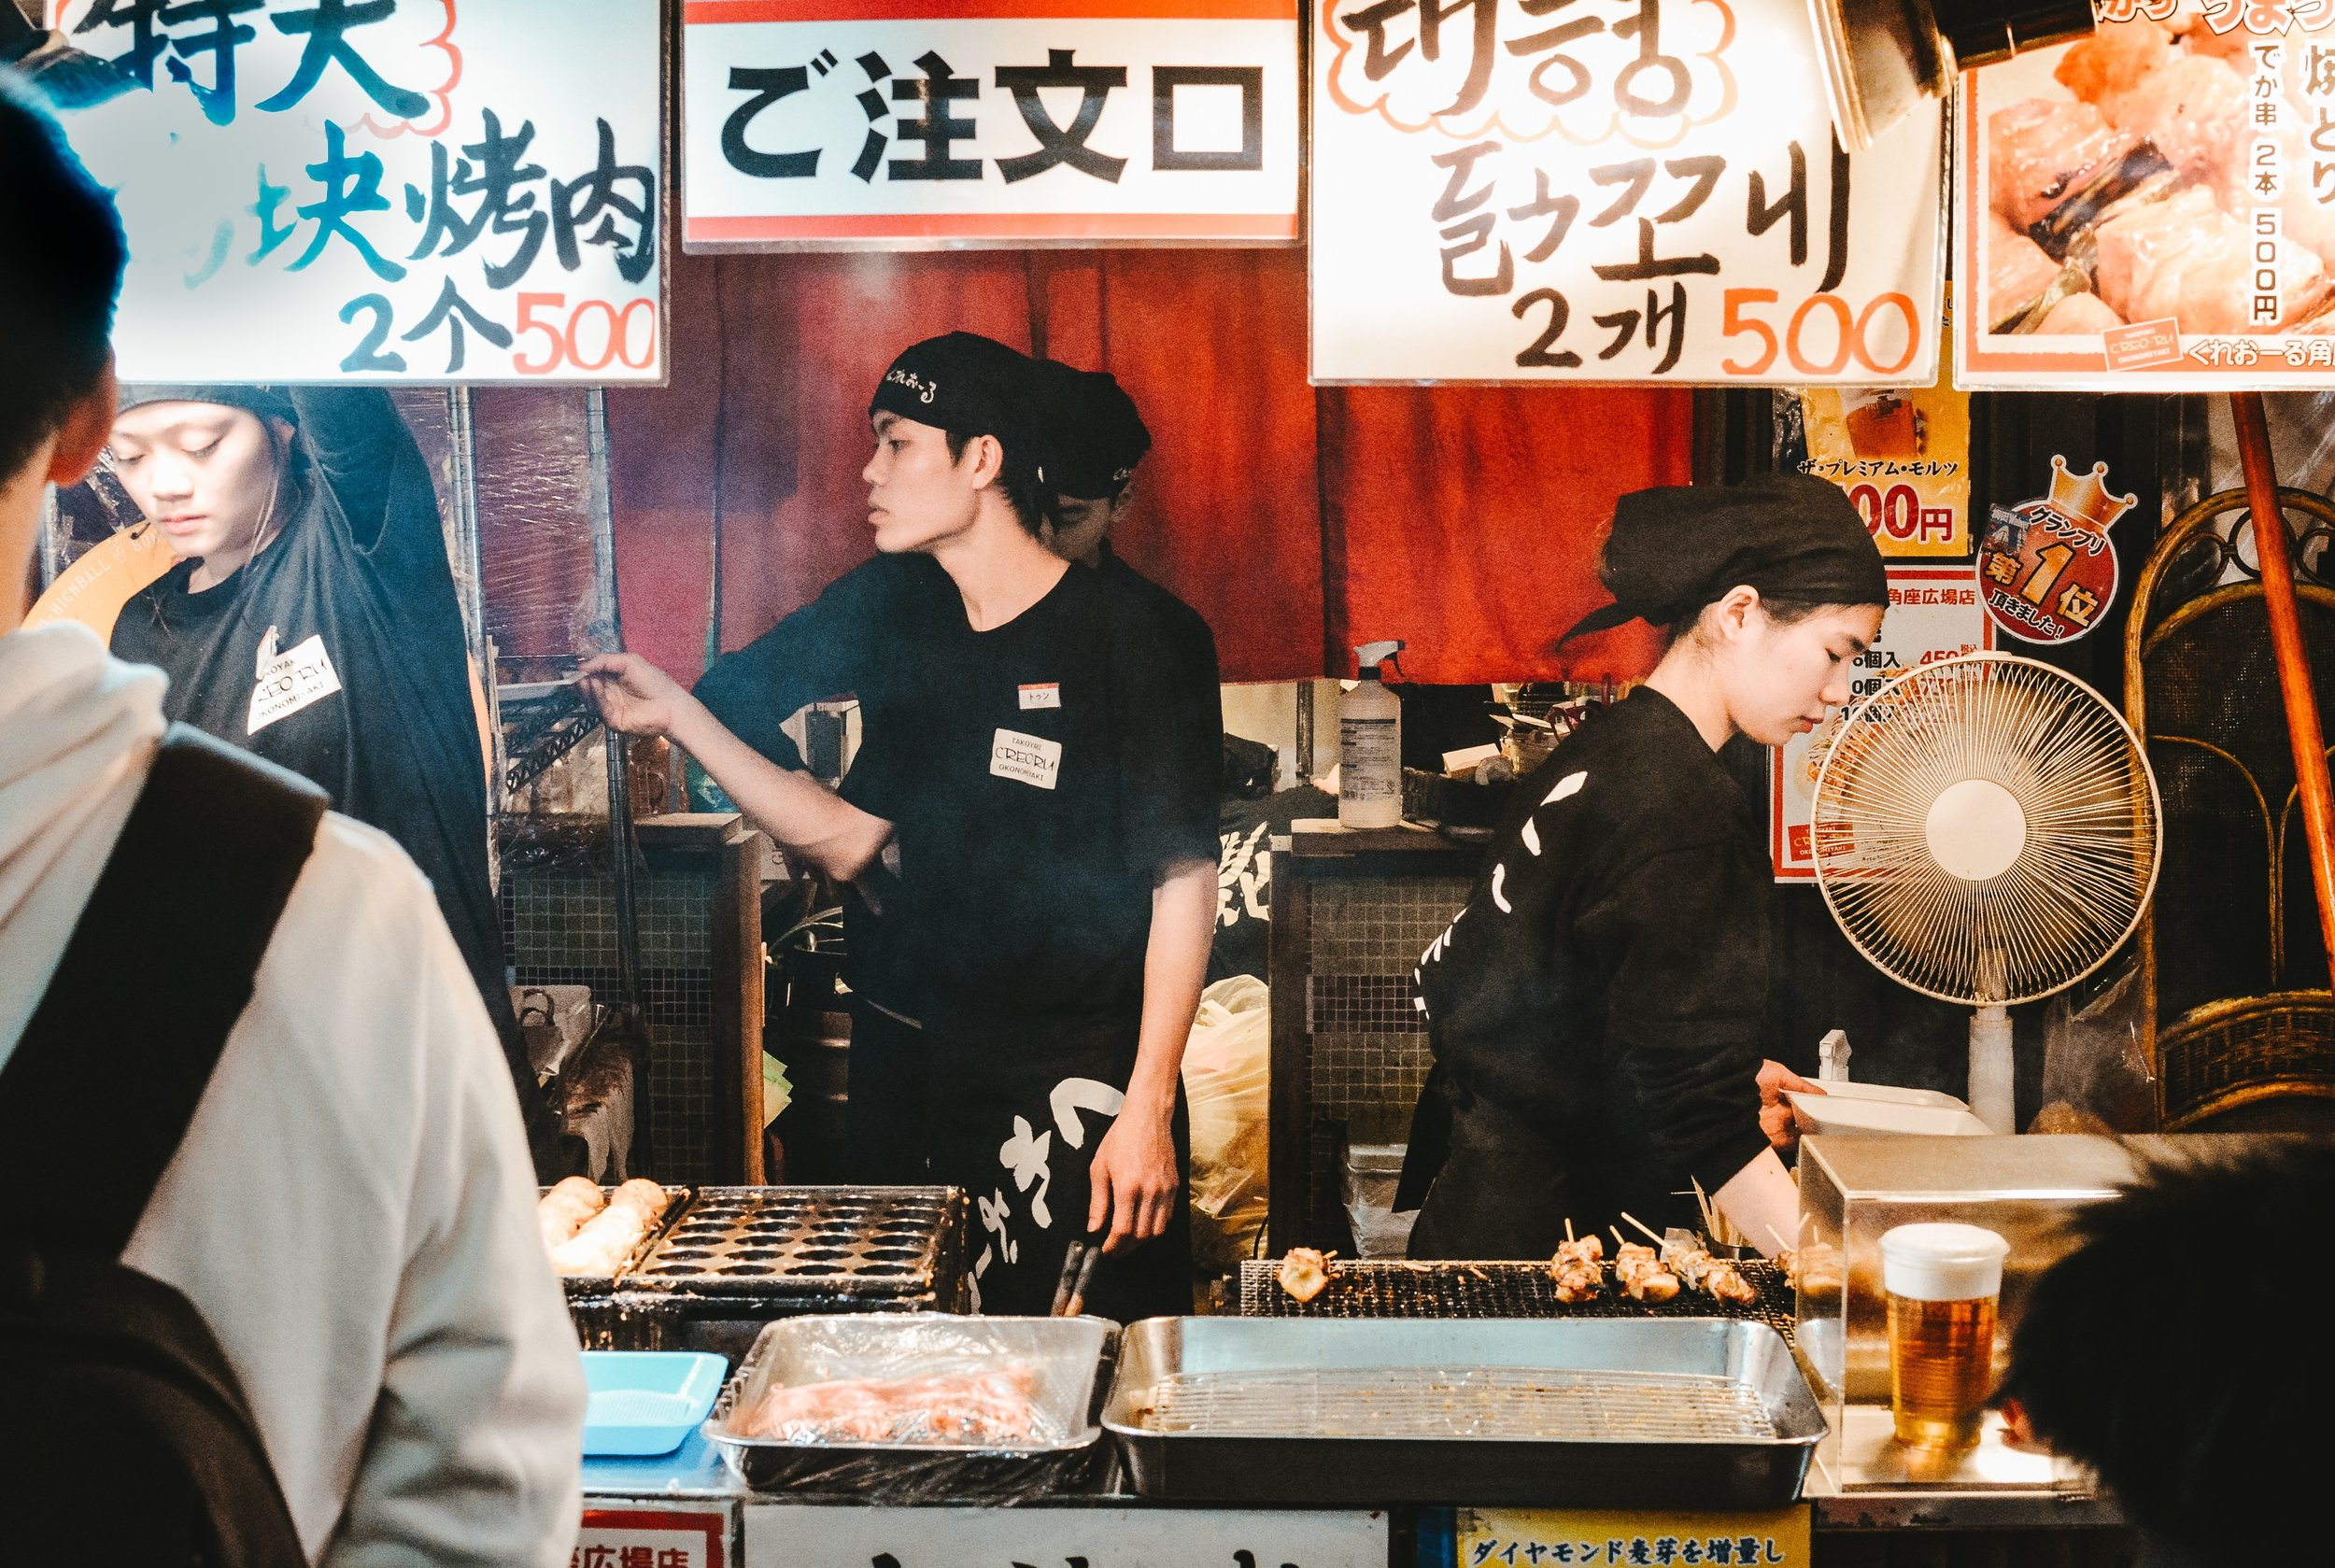 busy japanese food stand with chefs